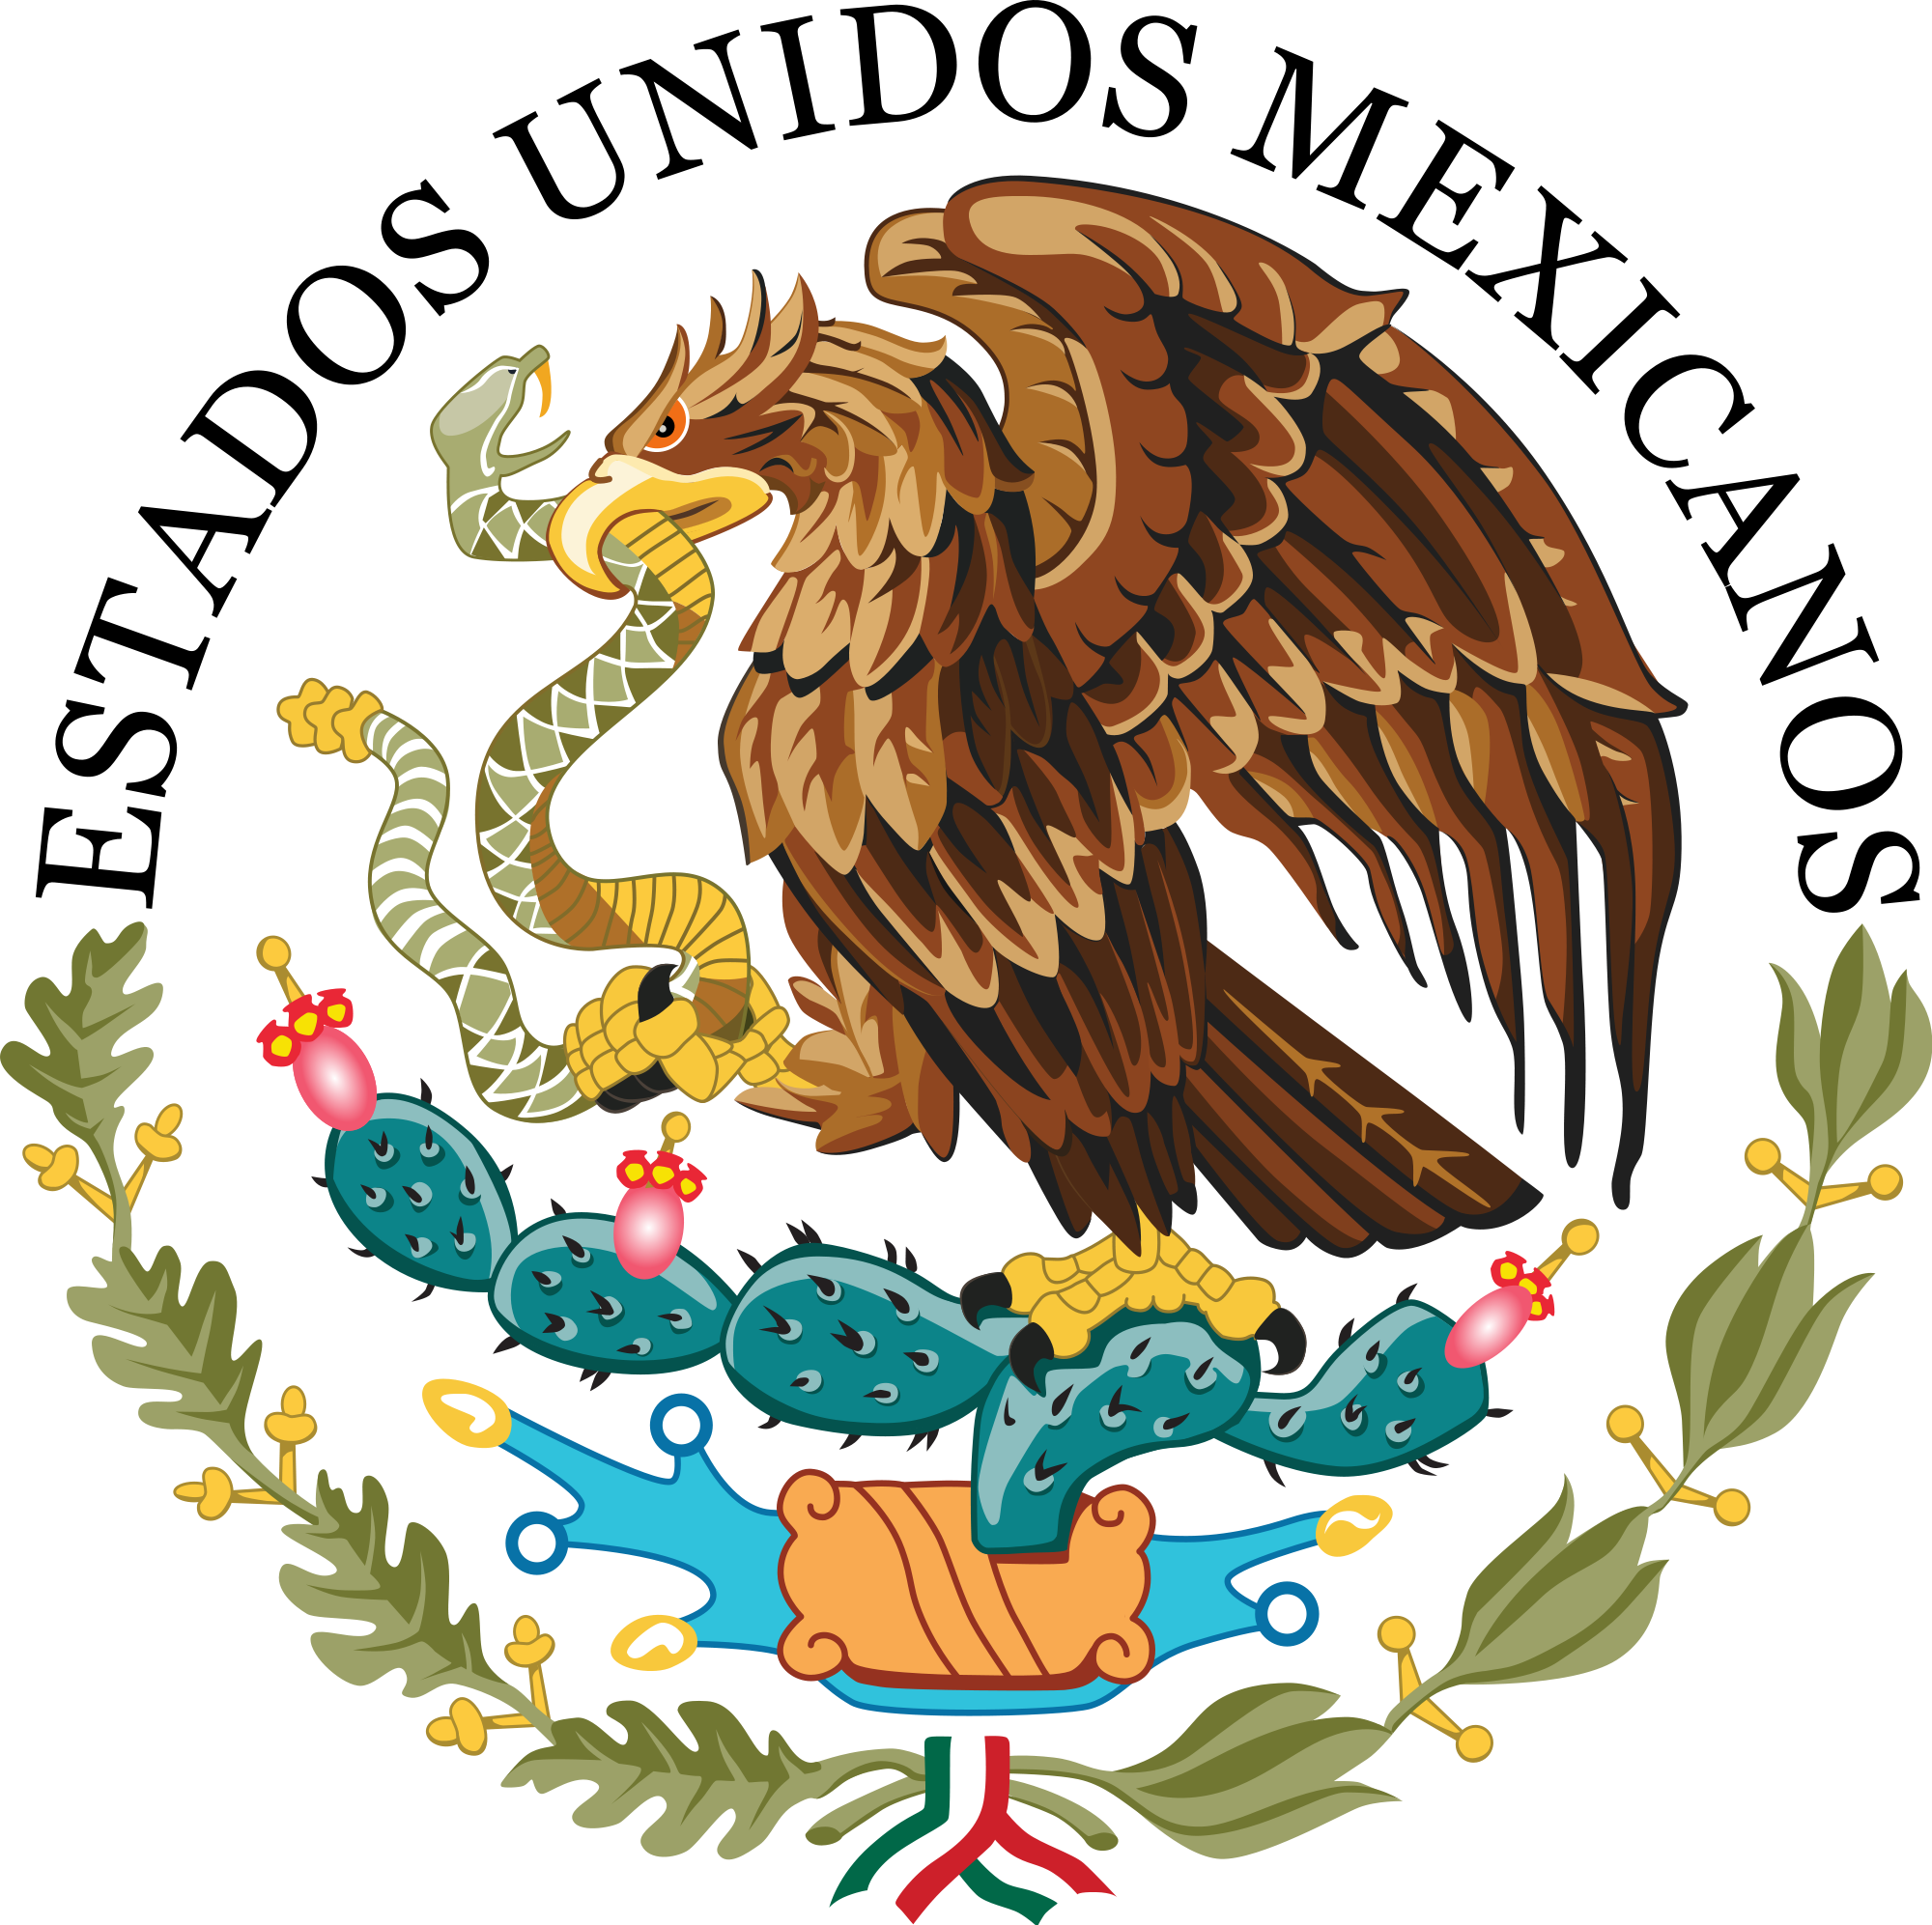 Fiesta clipart blanket mexican. Government library cliparts free